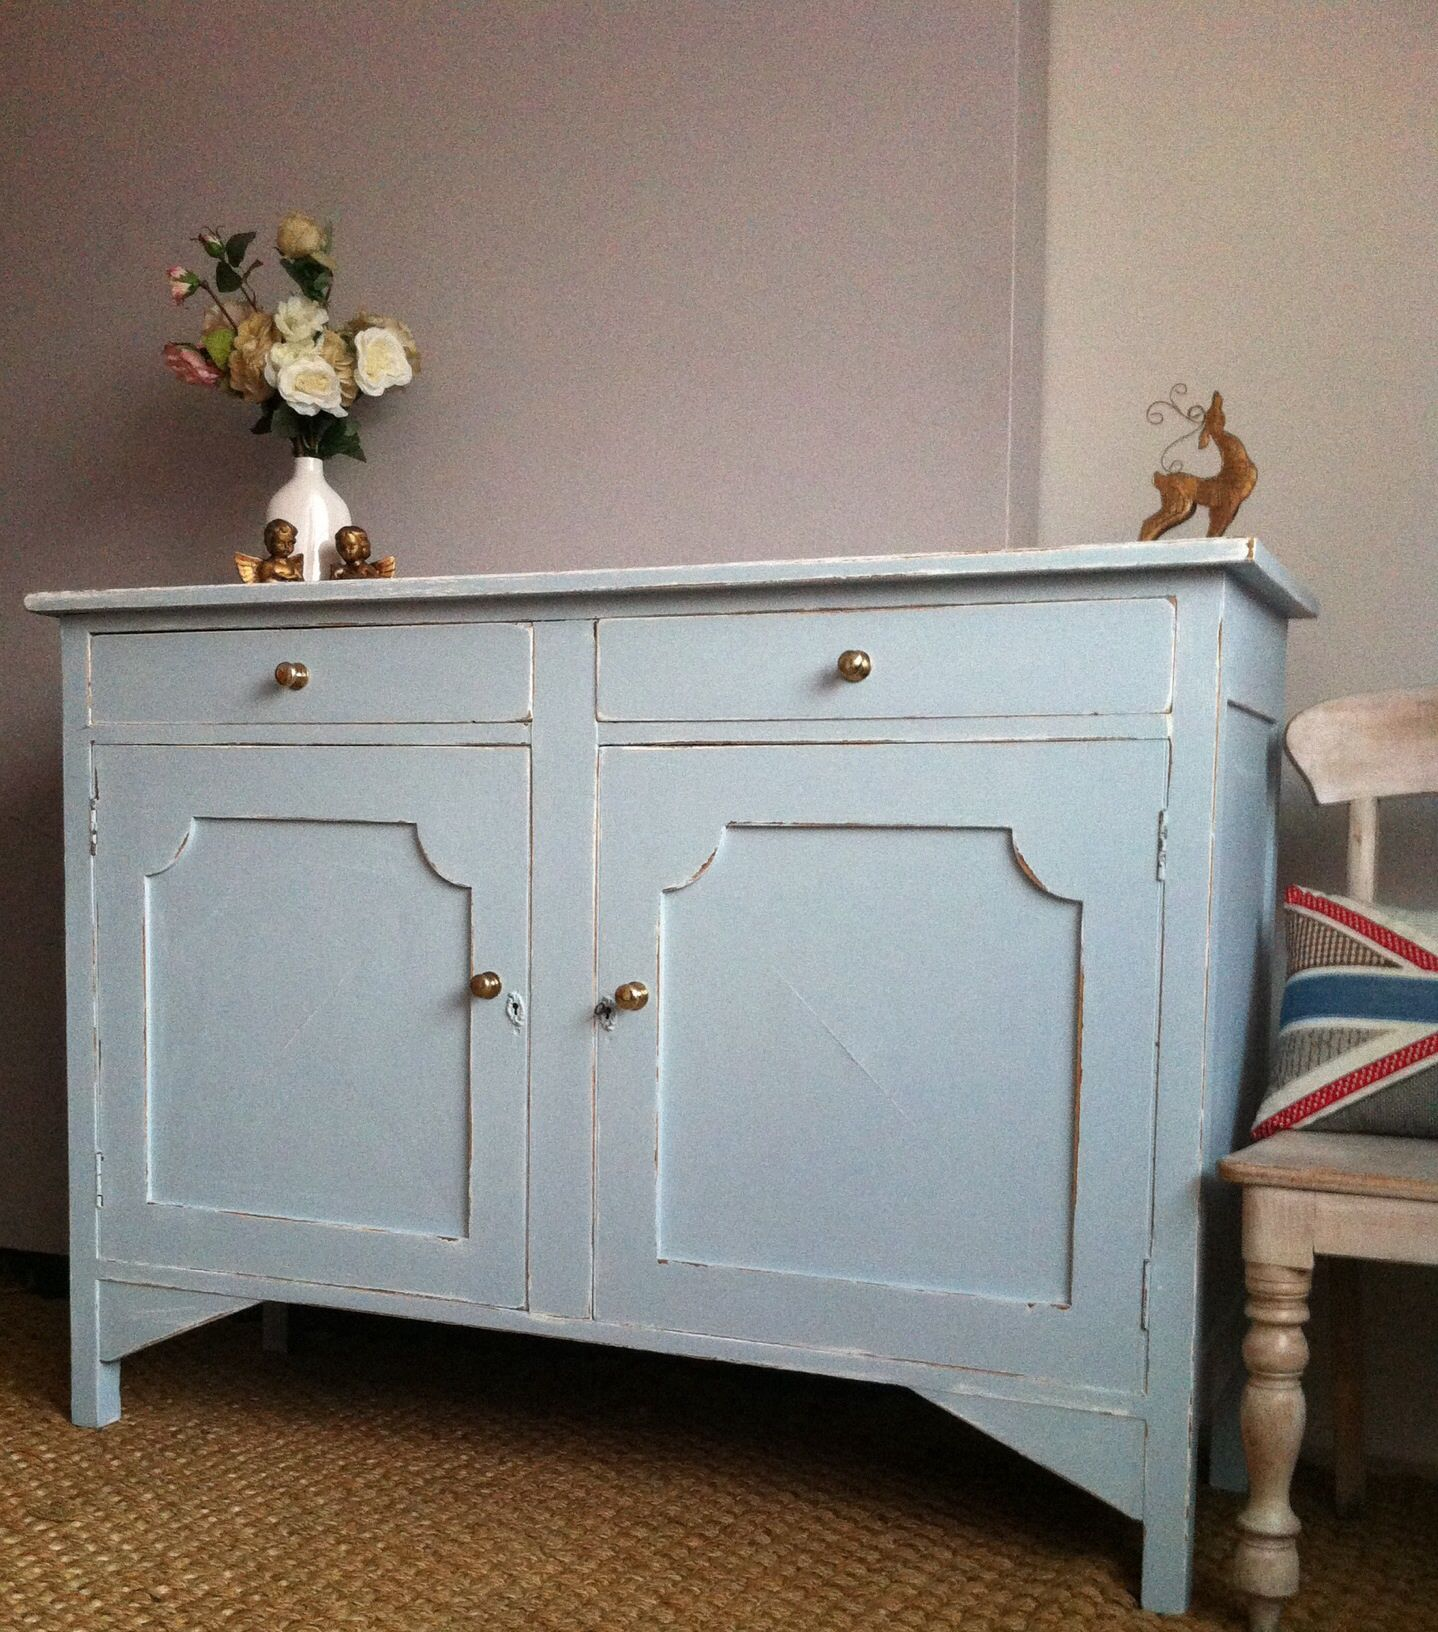 Beautiful shabby chic buffet sideboard in duck egg blue, detailed with gold colored victorian handles . The perfect distressed statement piece to show on display, with two pullout drawers, two lockable open door cupboards, with single shelved storage . A large solid piece with multiple options for your home. Buyer will not be disappointed   Approximate Dimensions - 138cm W x 100cmH x 48cm D